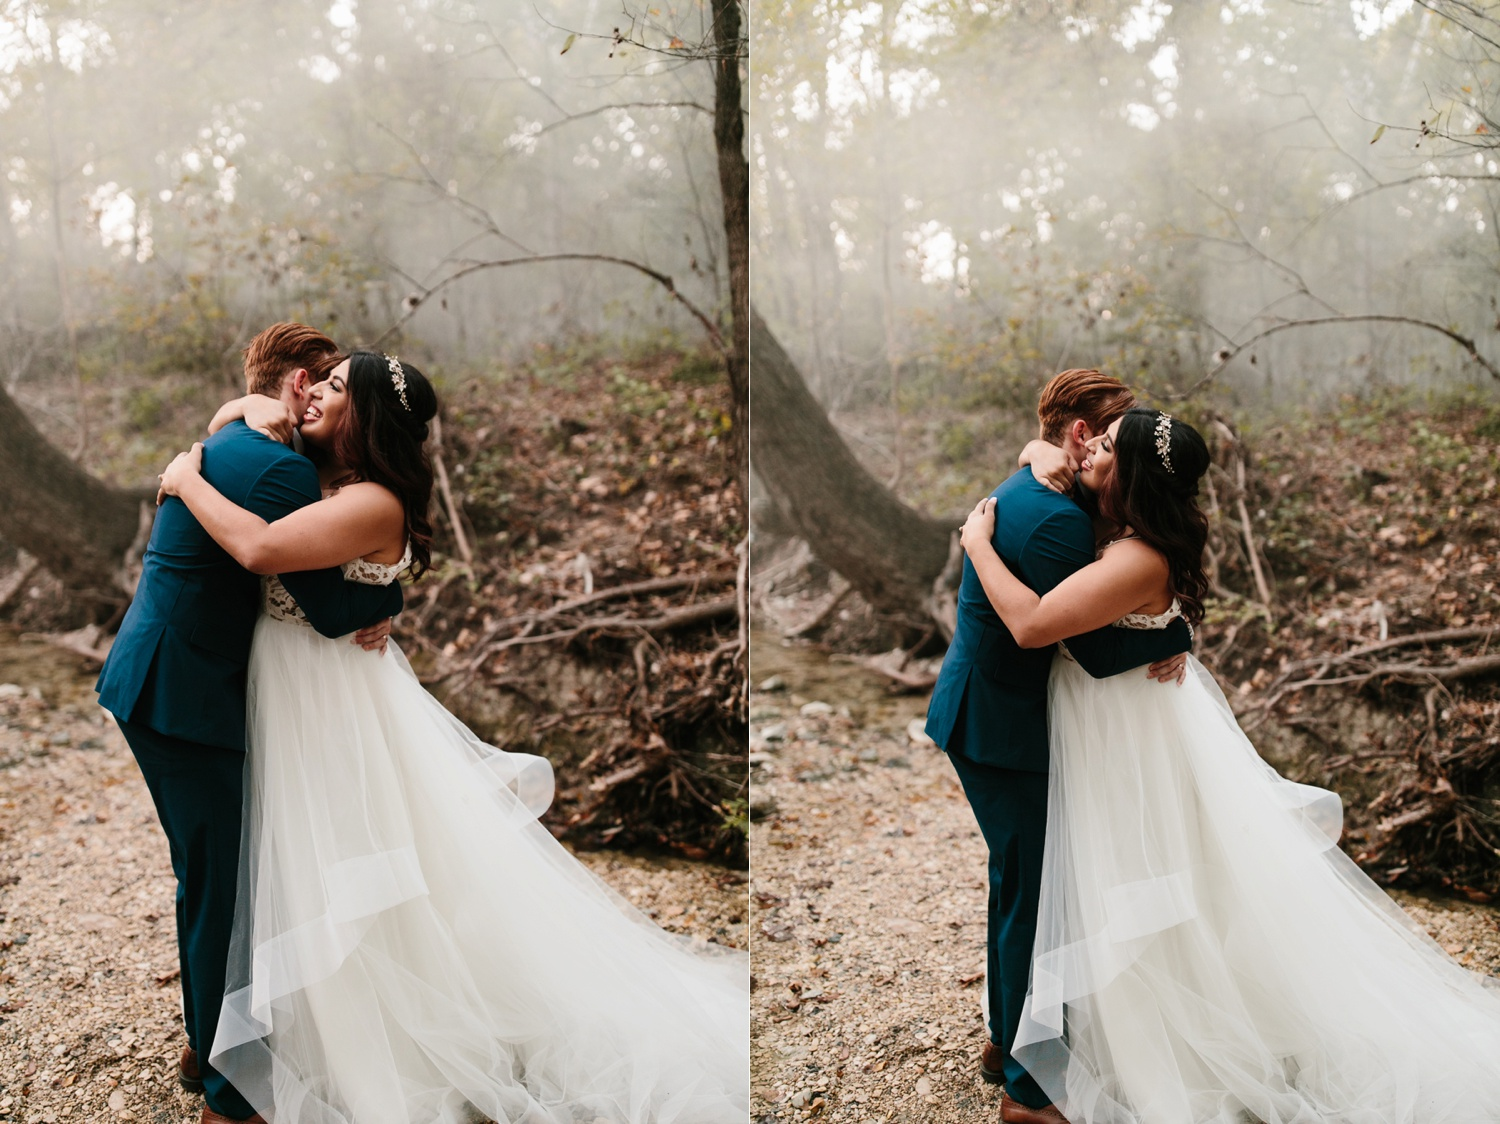 Grant + Lysette | a vibrant, deep burgundy and navy, and mixed metals wedding at Hidden Pines Chapel by North Texas Wedding Photographer Rachel Meagan Photography 261